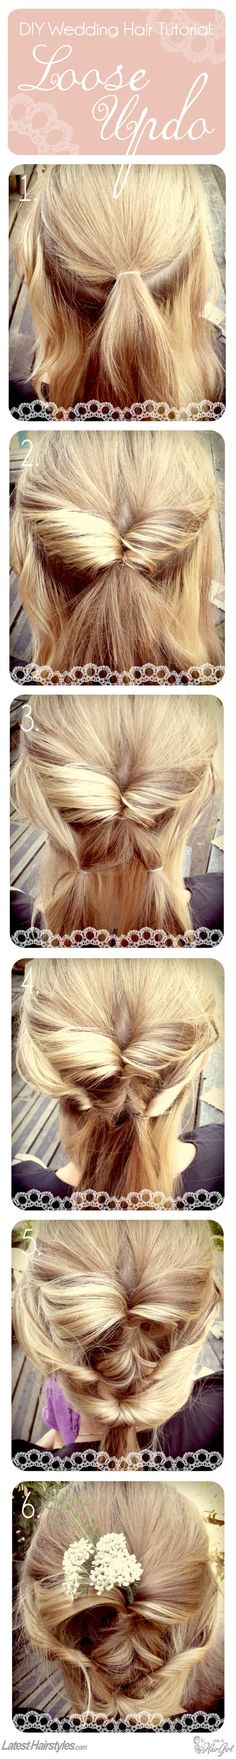 Loose Updo - Get the full tutorial here...